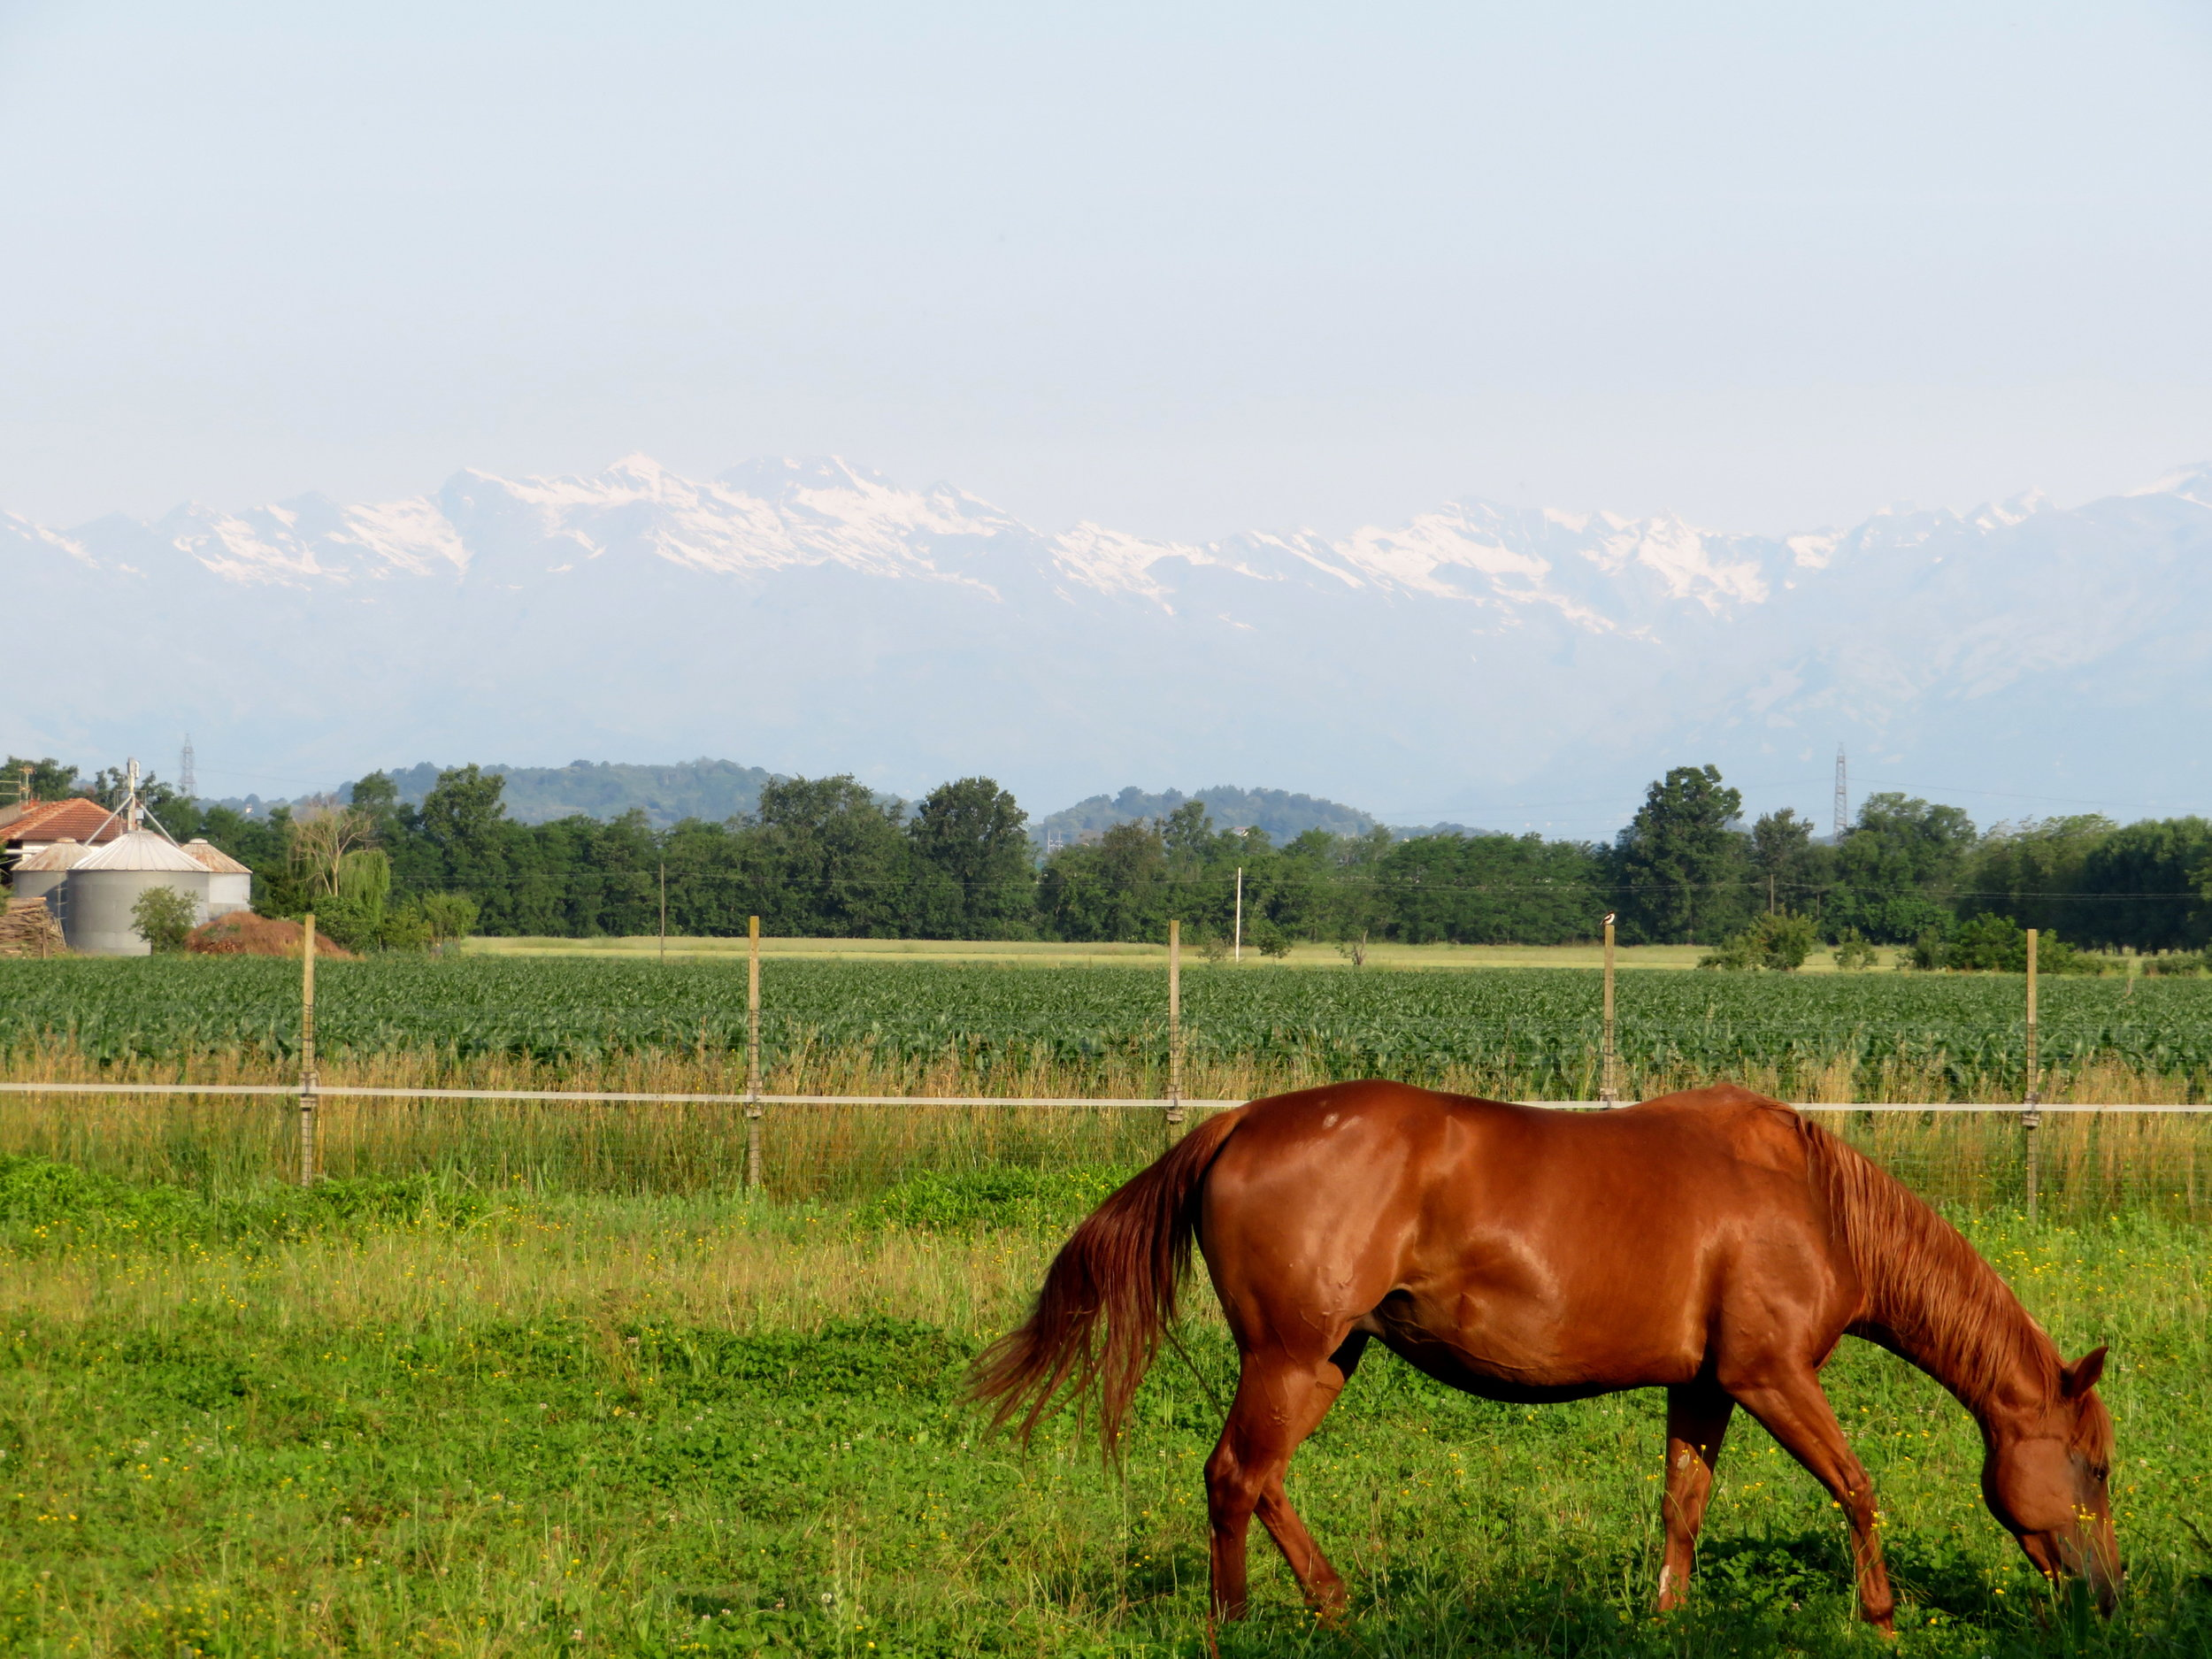 Our first glimpse of the snow-covered Alps in the far distance